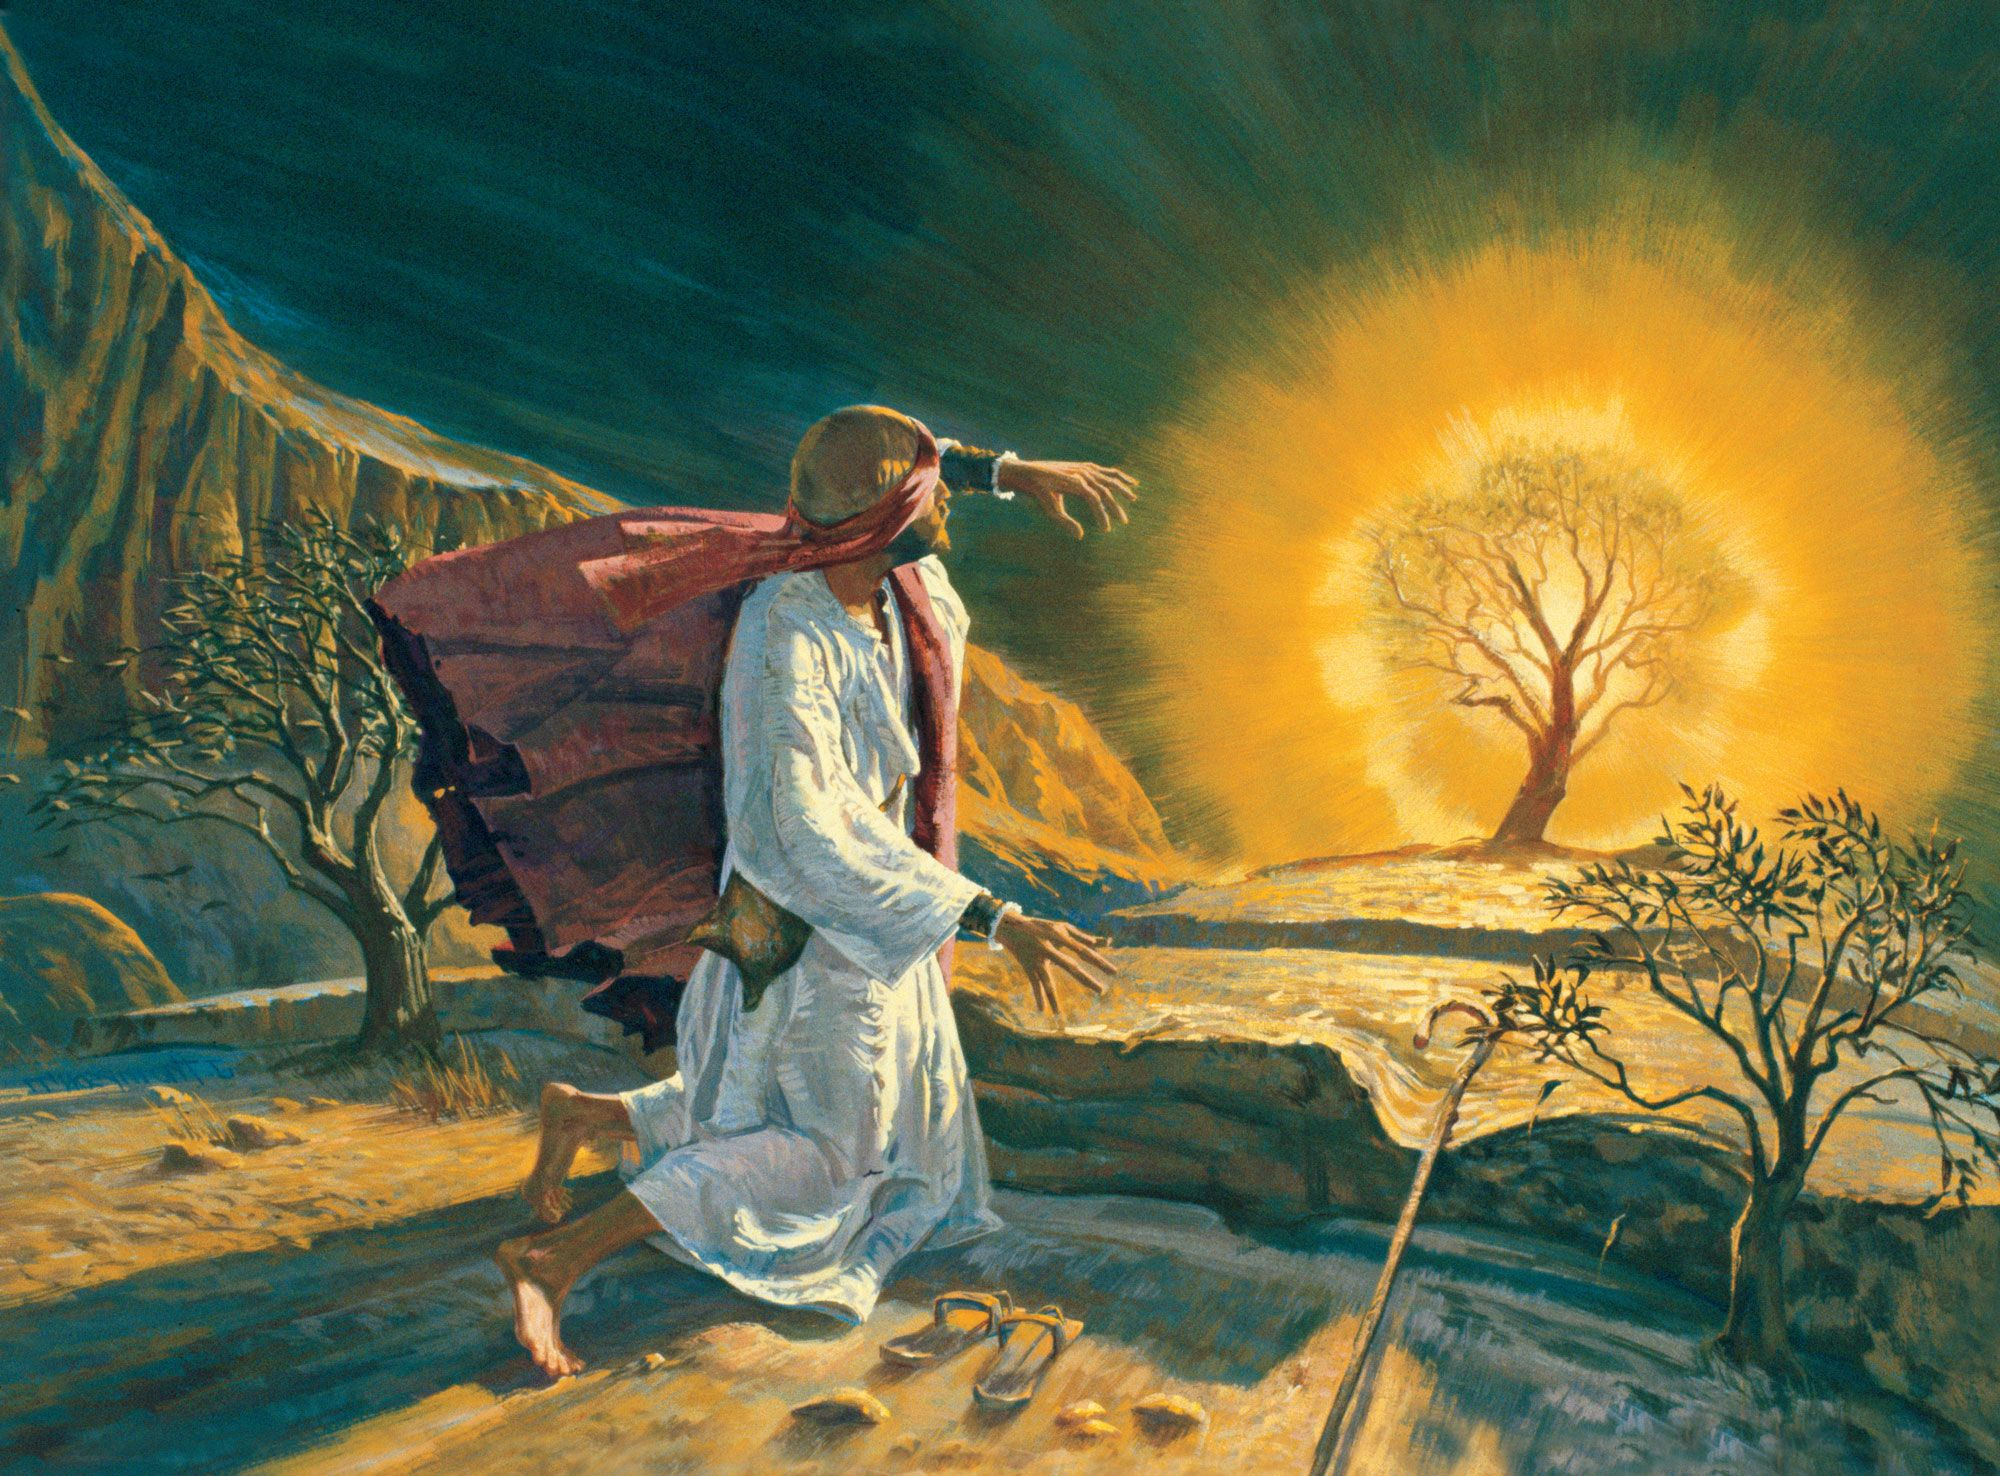 moses and burning bush - Google Search | Bible-OT ...